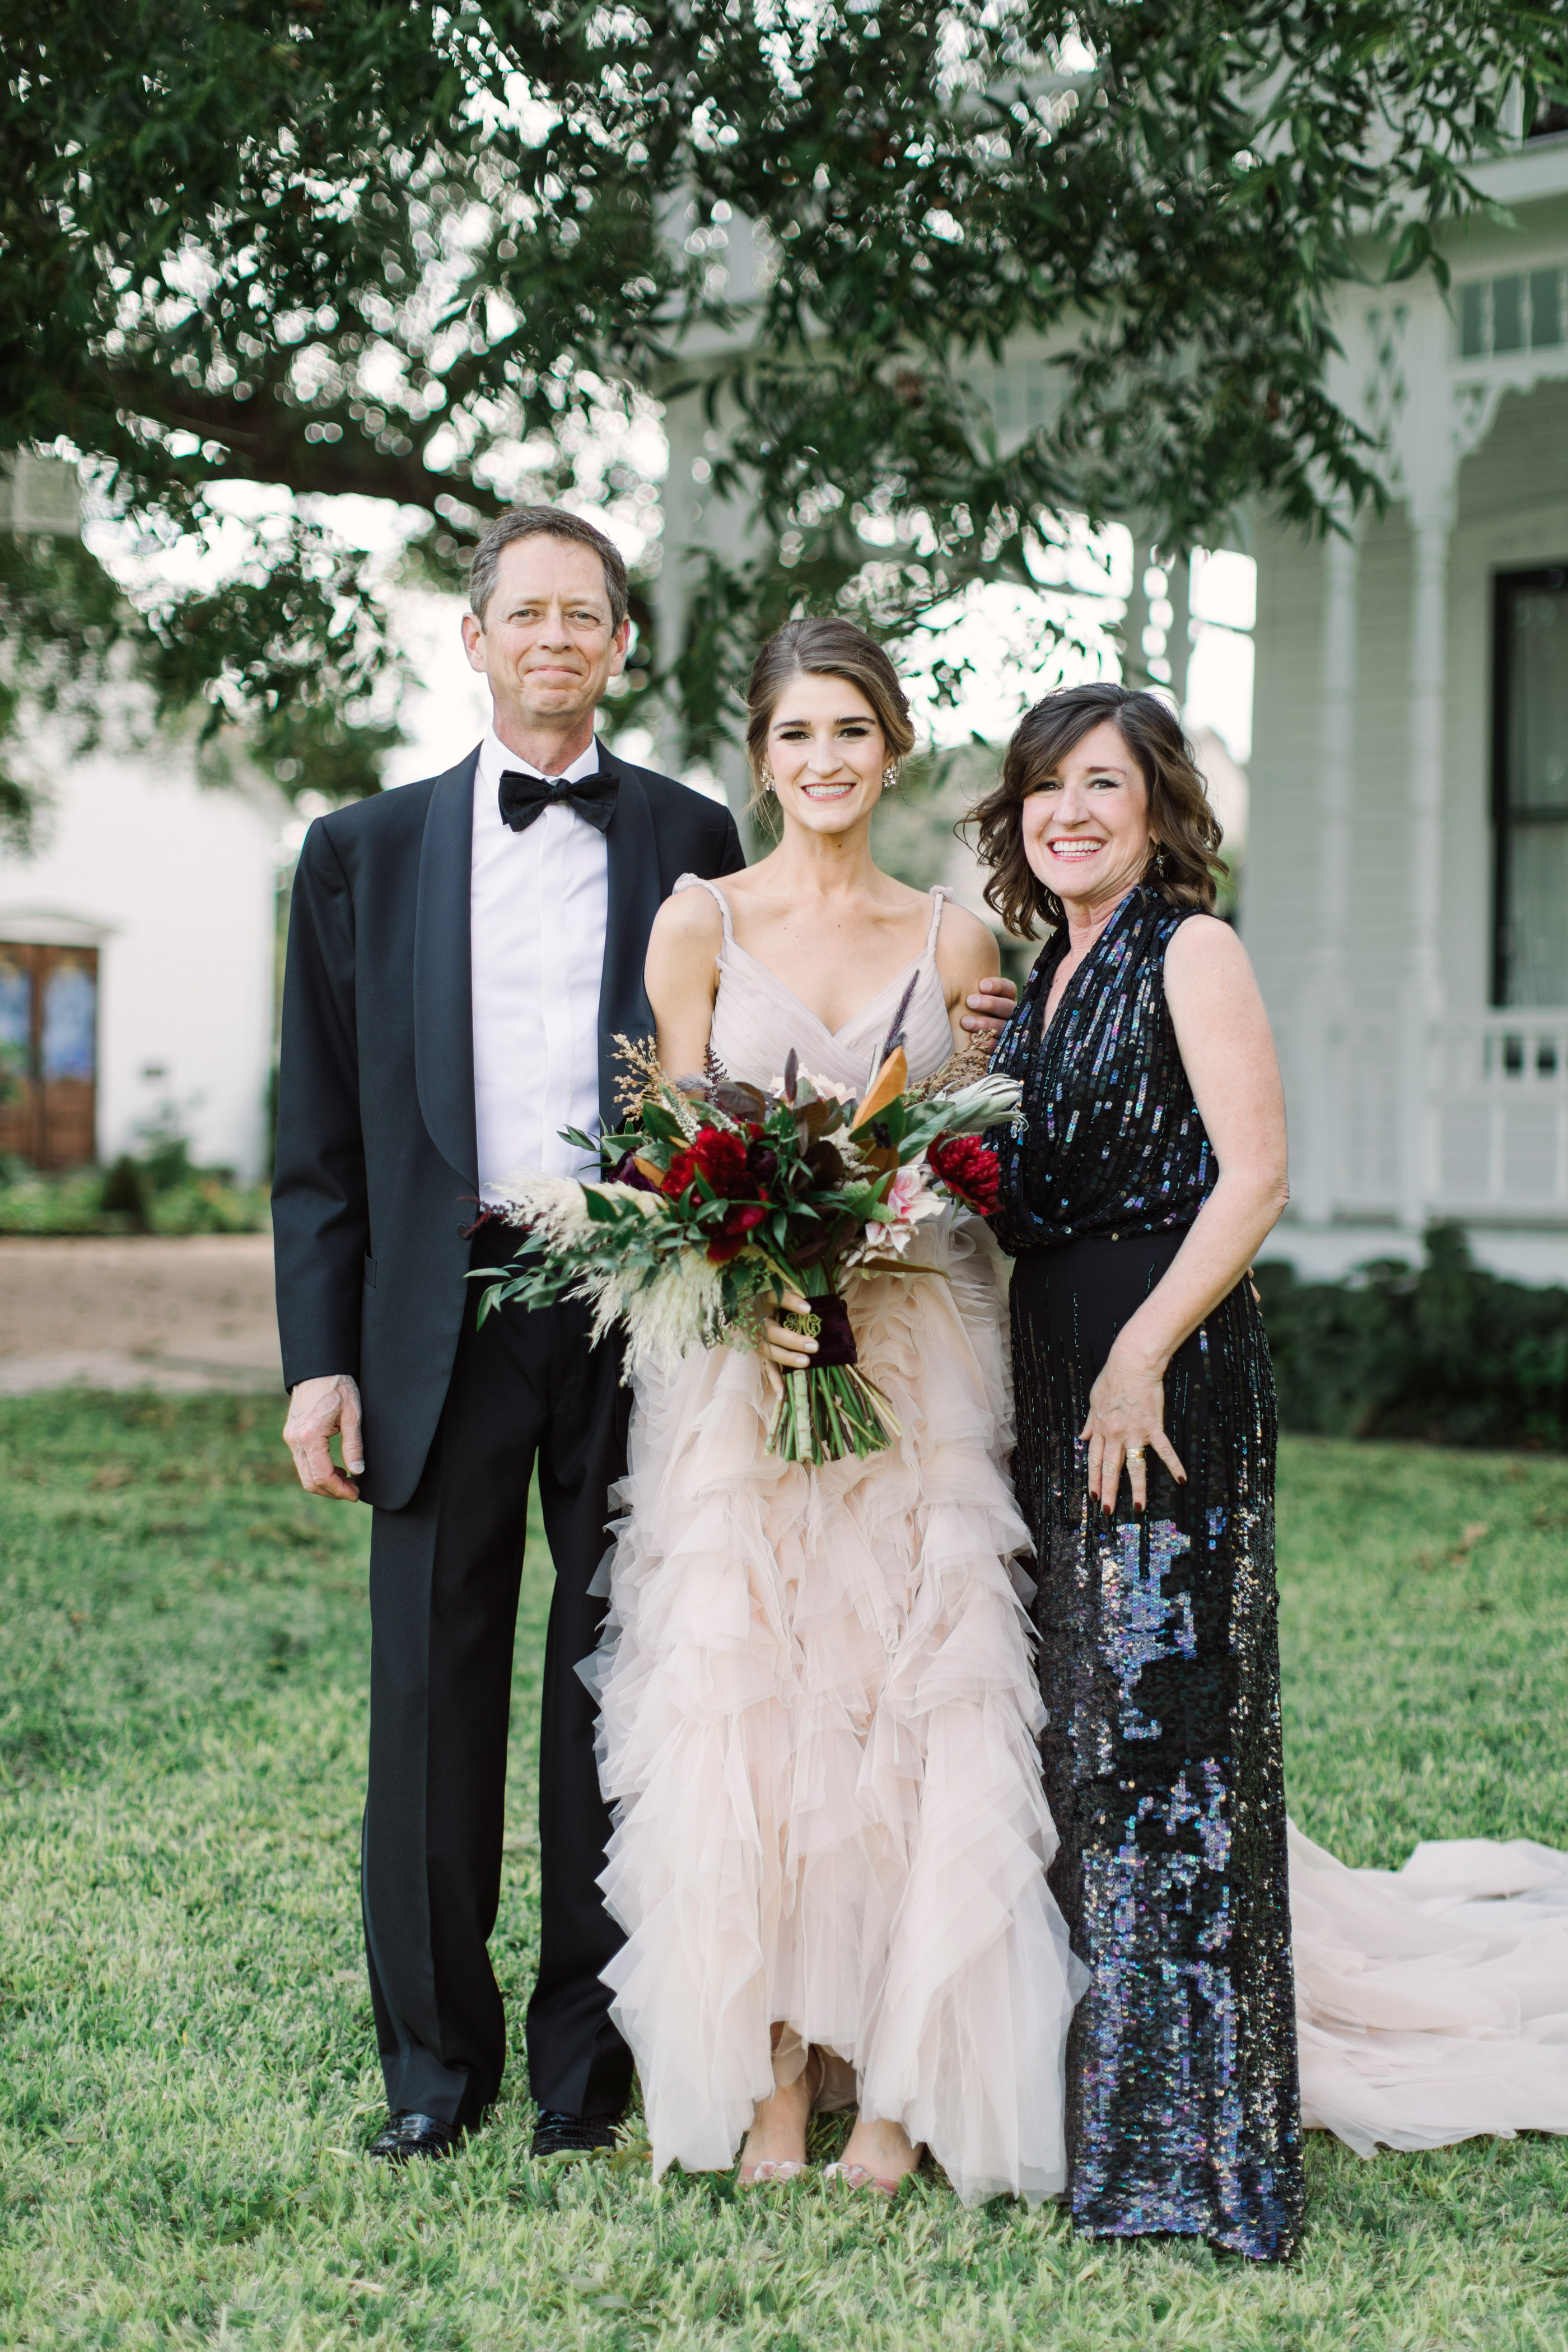 For the Moms: What You Need to Know About Helping Your Child Plan His or Her Wedding